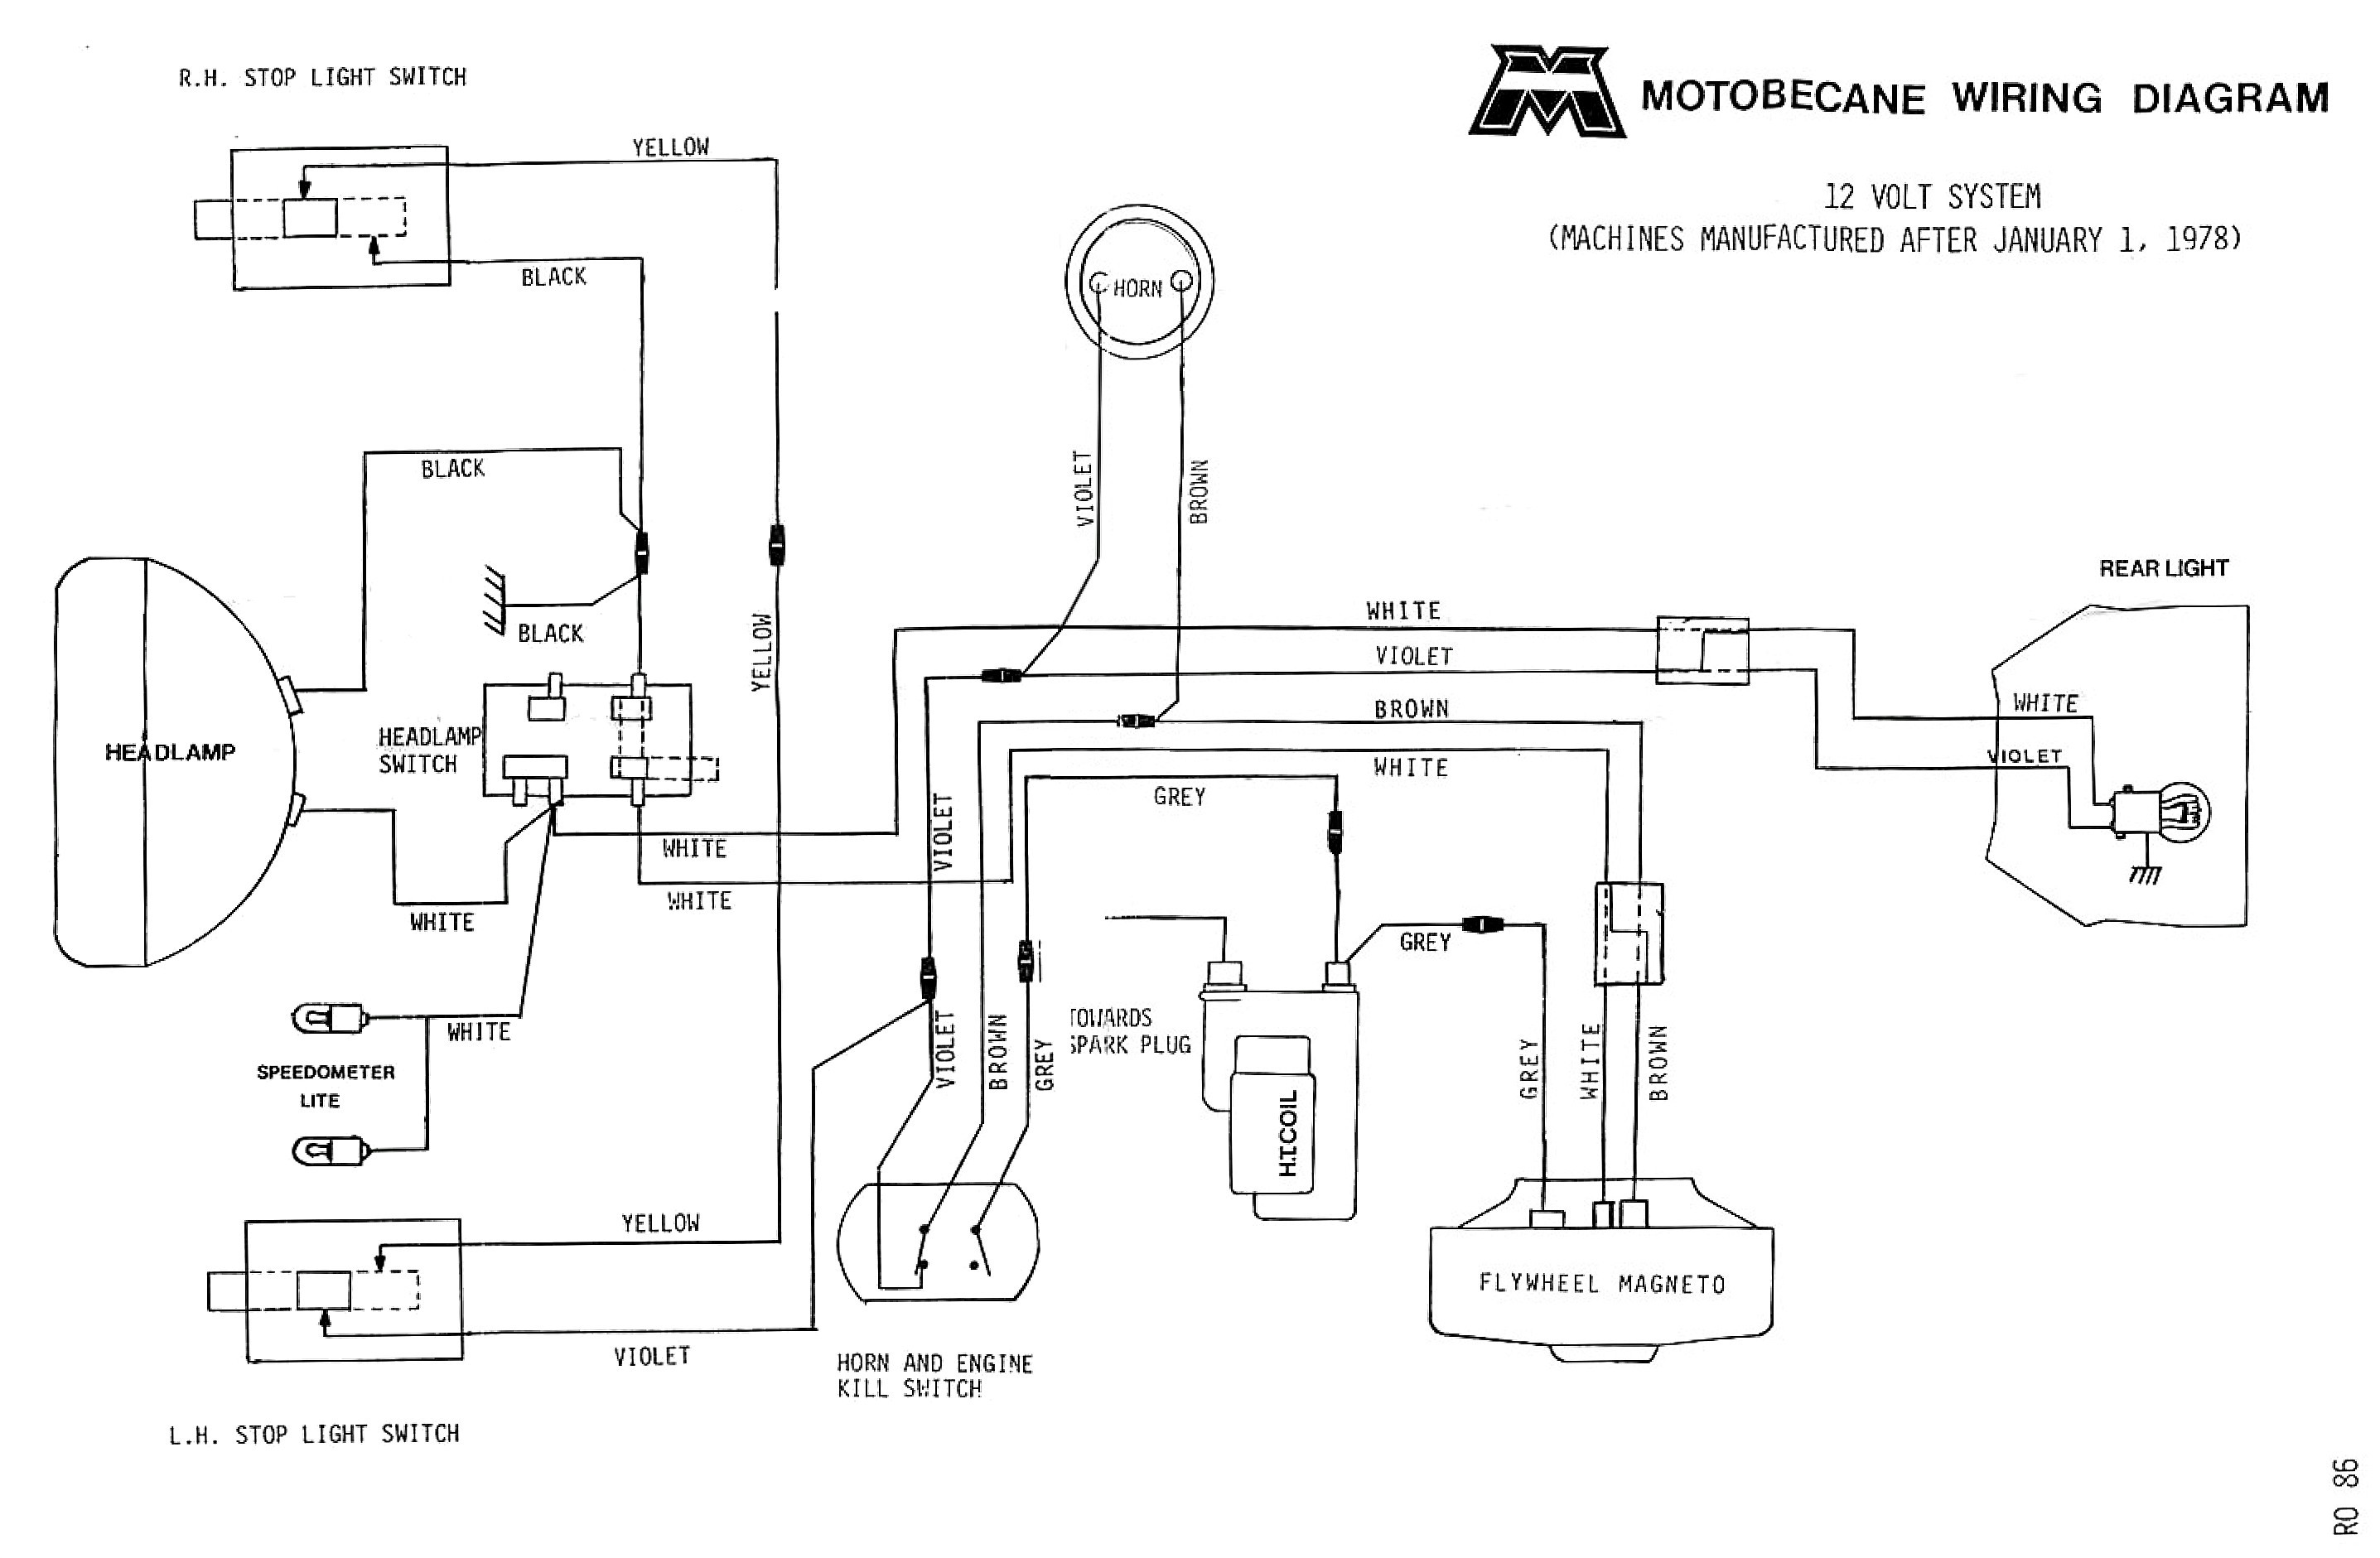 DIAGRAM] Ford 8n Wiring Diagram 12 Volt Wiring Diagram FULL Version HD  Quality Wiring Diagram - KARA-DIAGRAMBASE.DISCOCLASSIC.ITDiagram Database - discoclassic.it